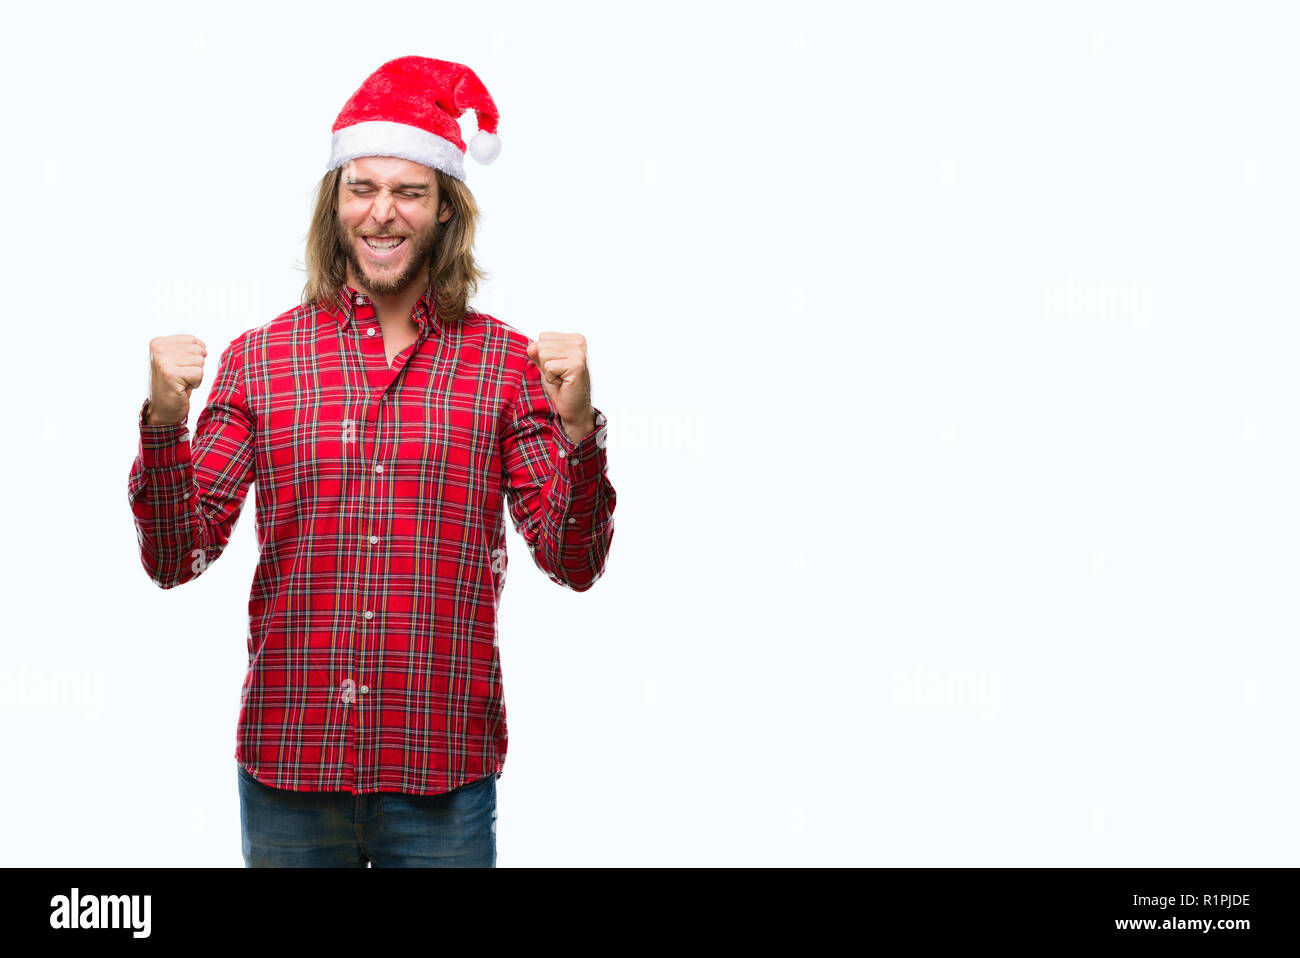 Young handsome man with long hair wearing santa claus hat over isolated background very happy and excited doing winner gesture with arms raised, smili - Stock Image